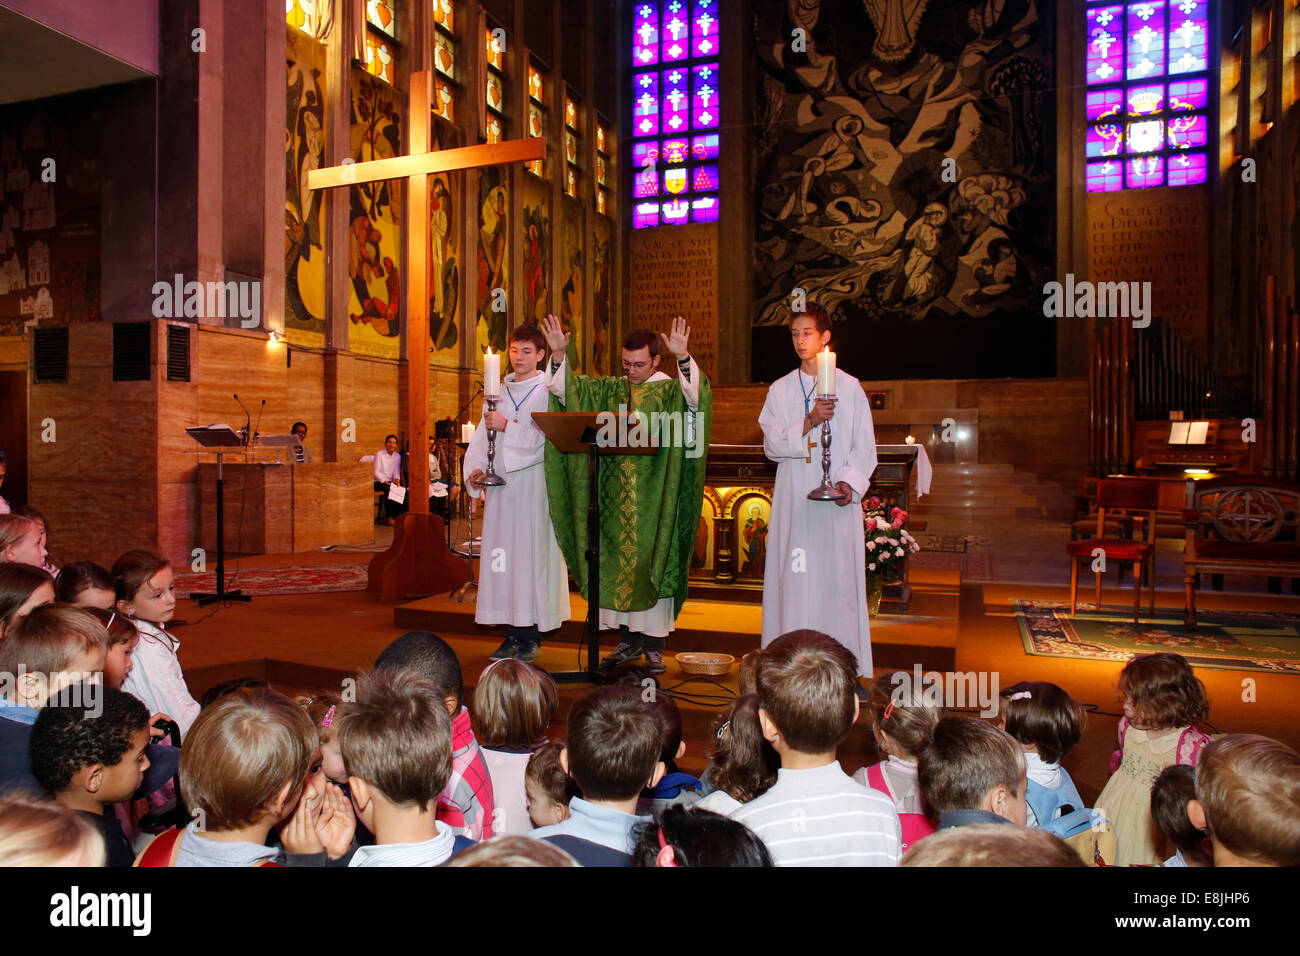 Mass of the new term at St Joan of Arc's school. Blessing of the pupils. - Stock Image